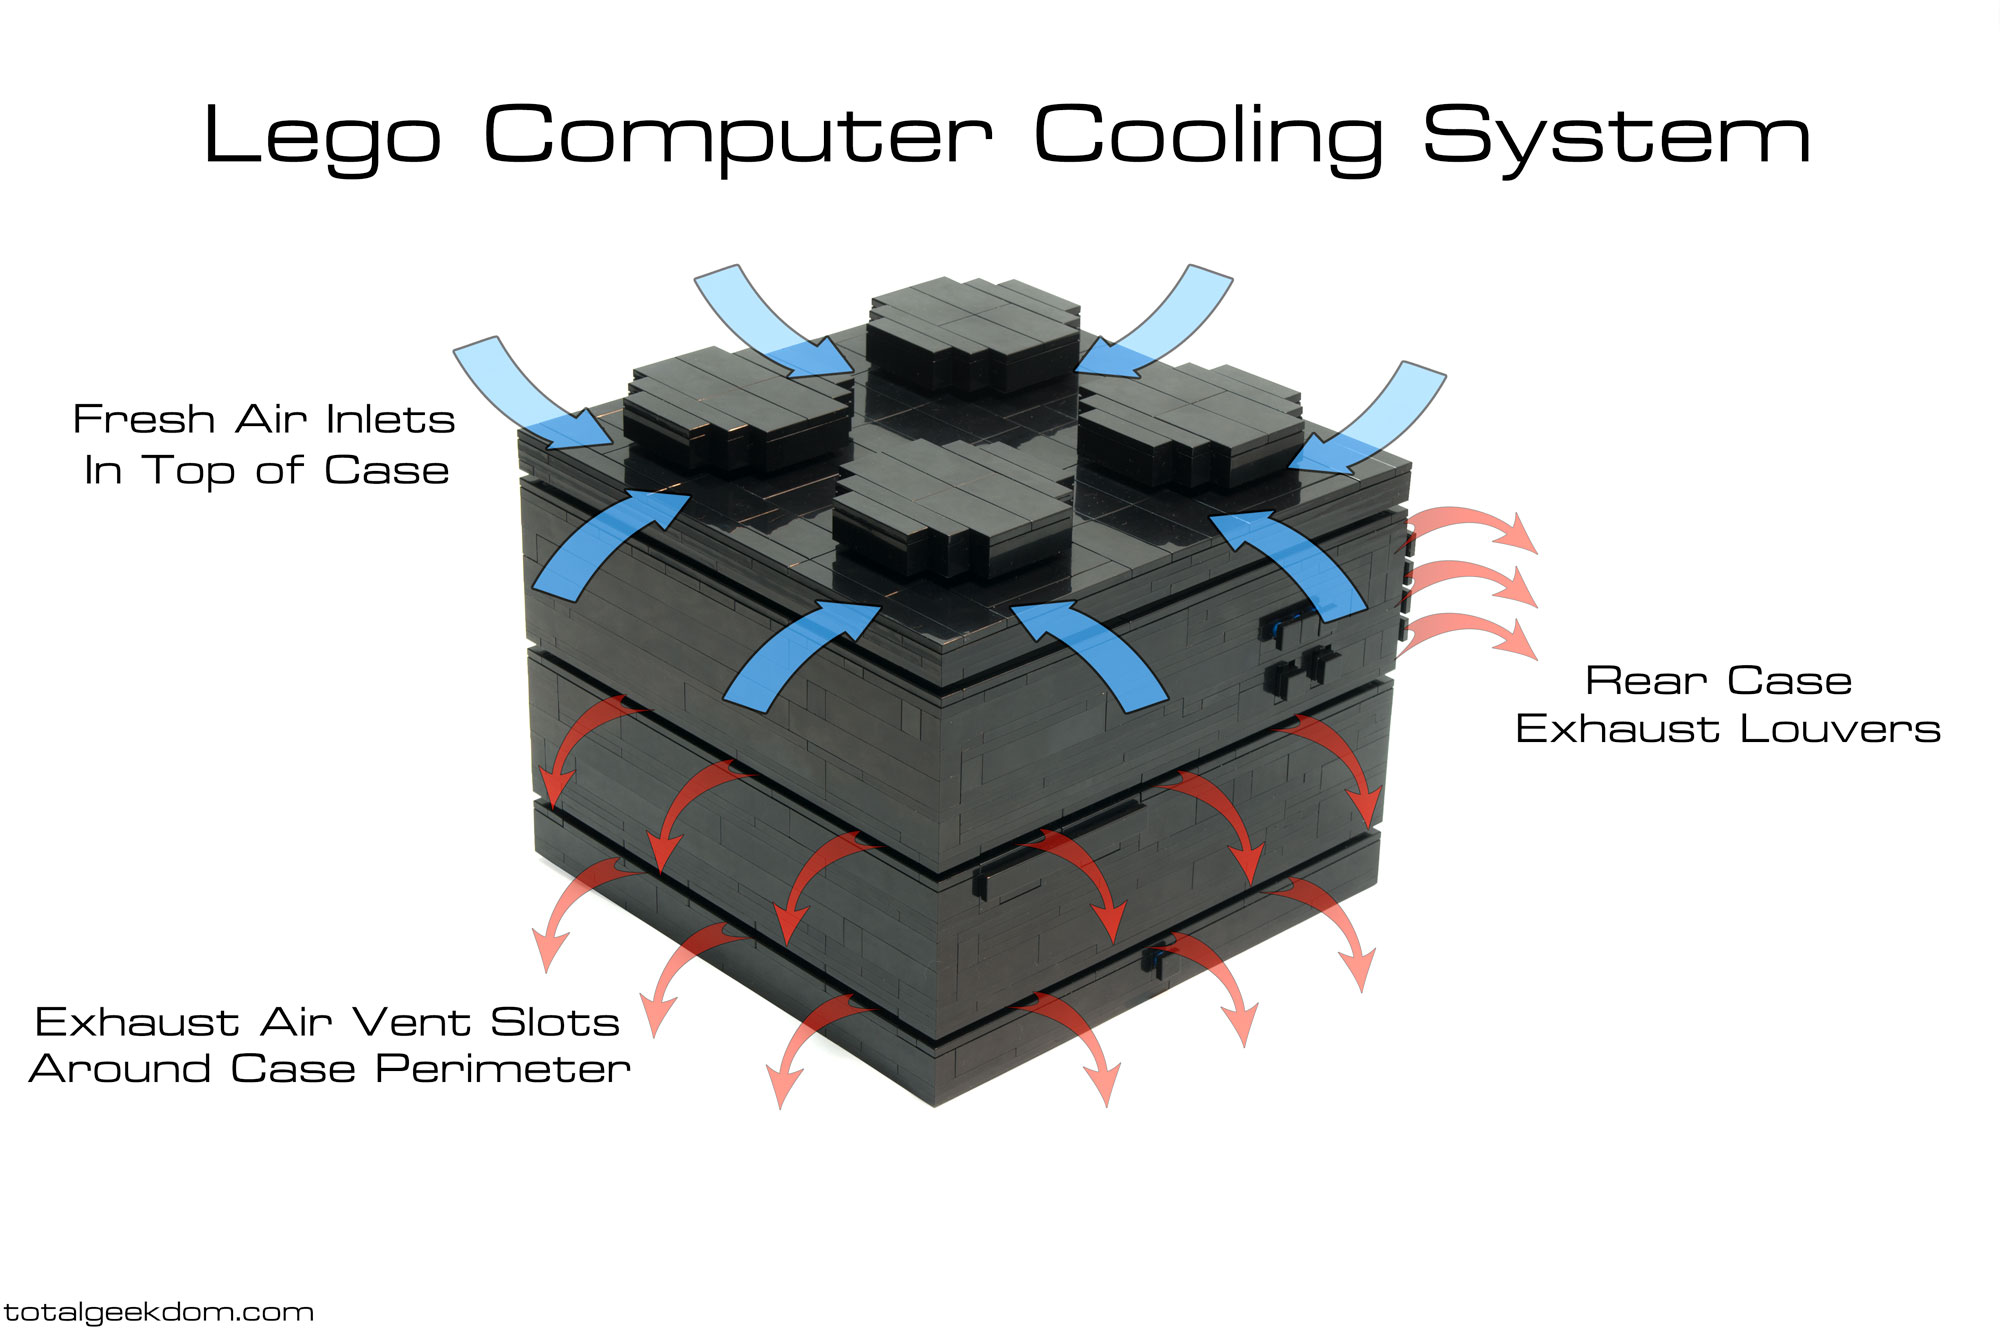 Computer Cooling System : Lego computer total geekdom